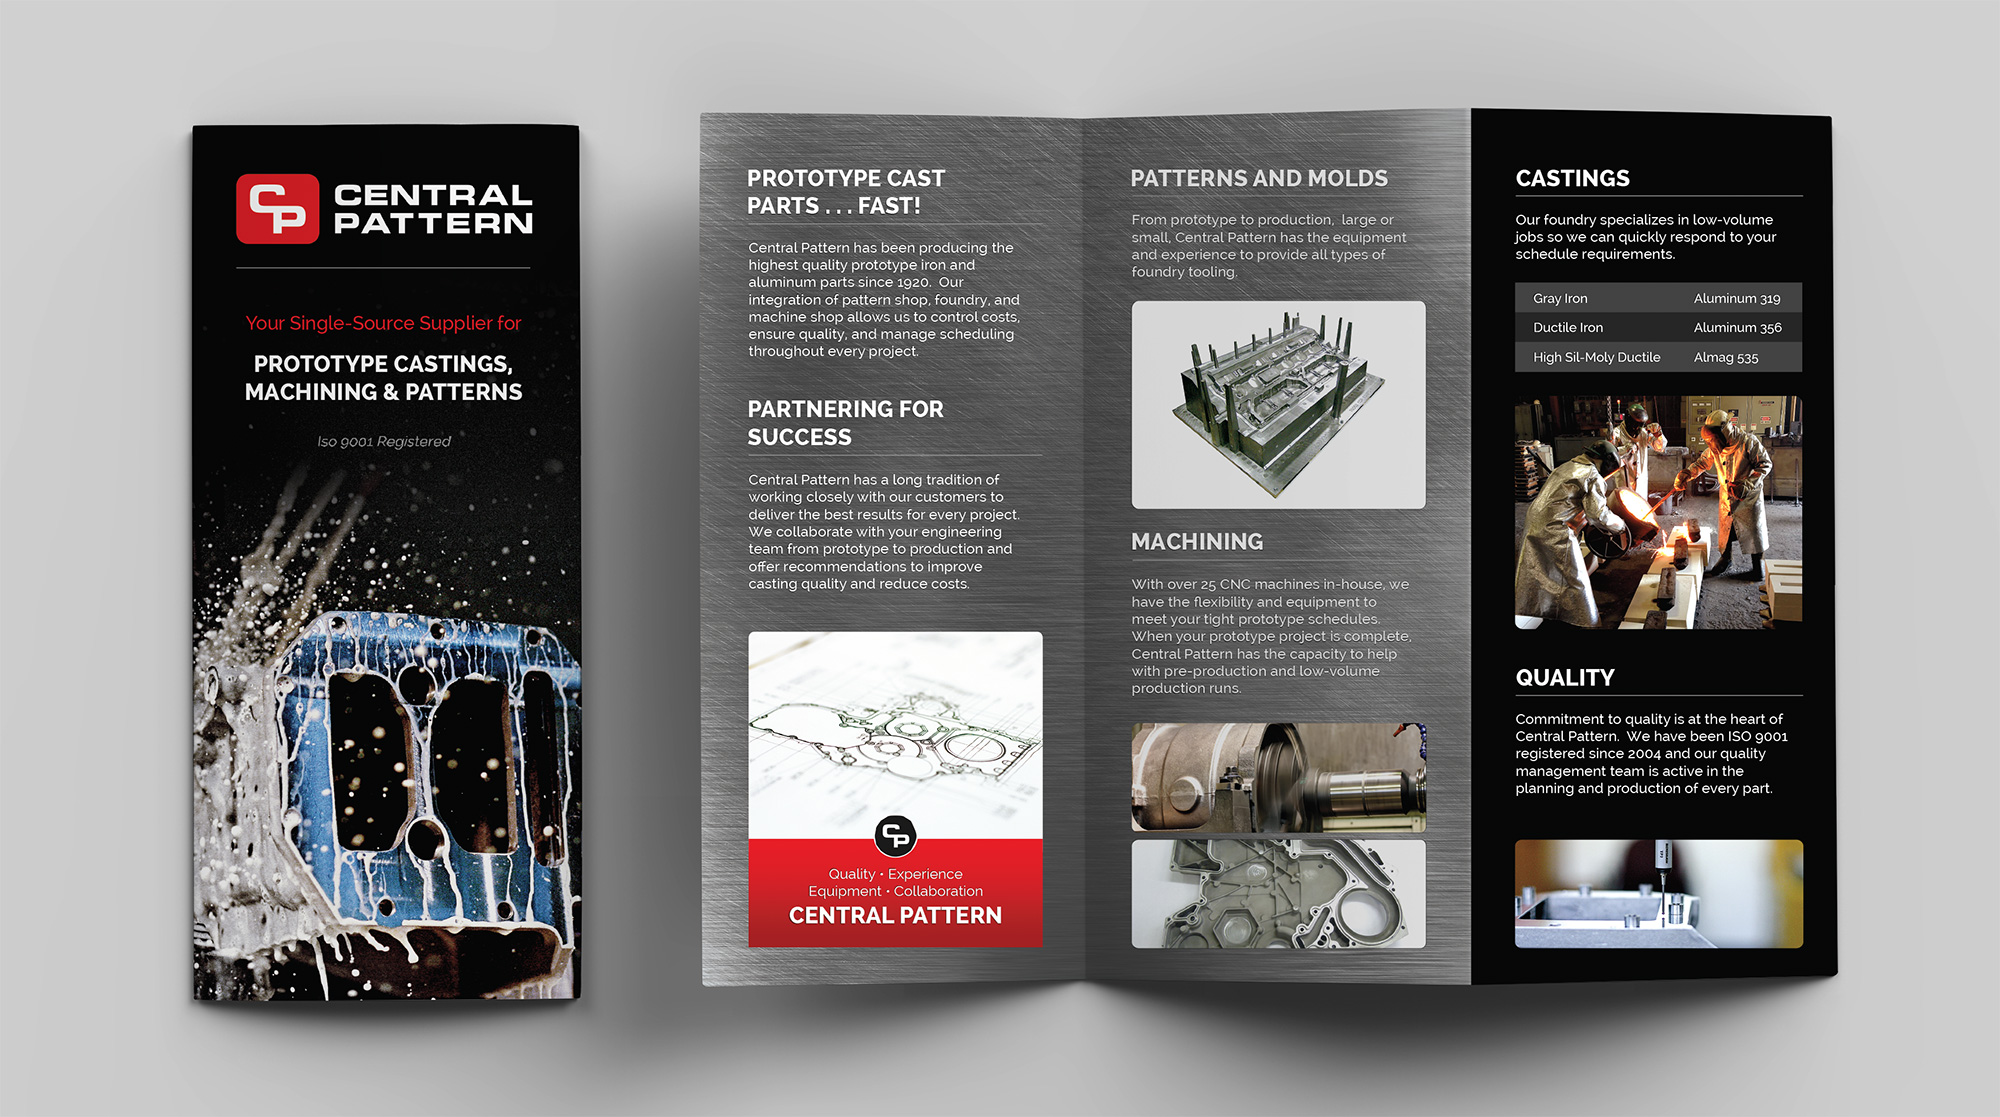 prototype-castings-st-louis-brochure-design